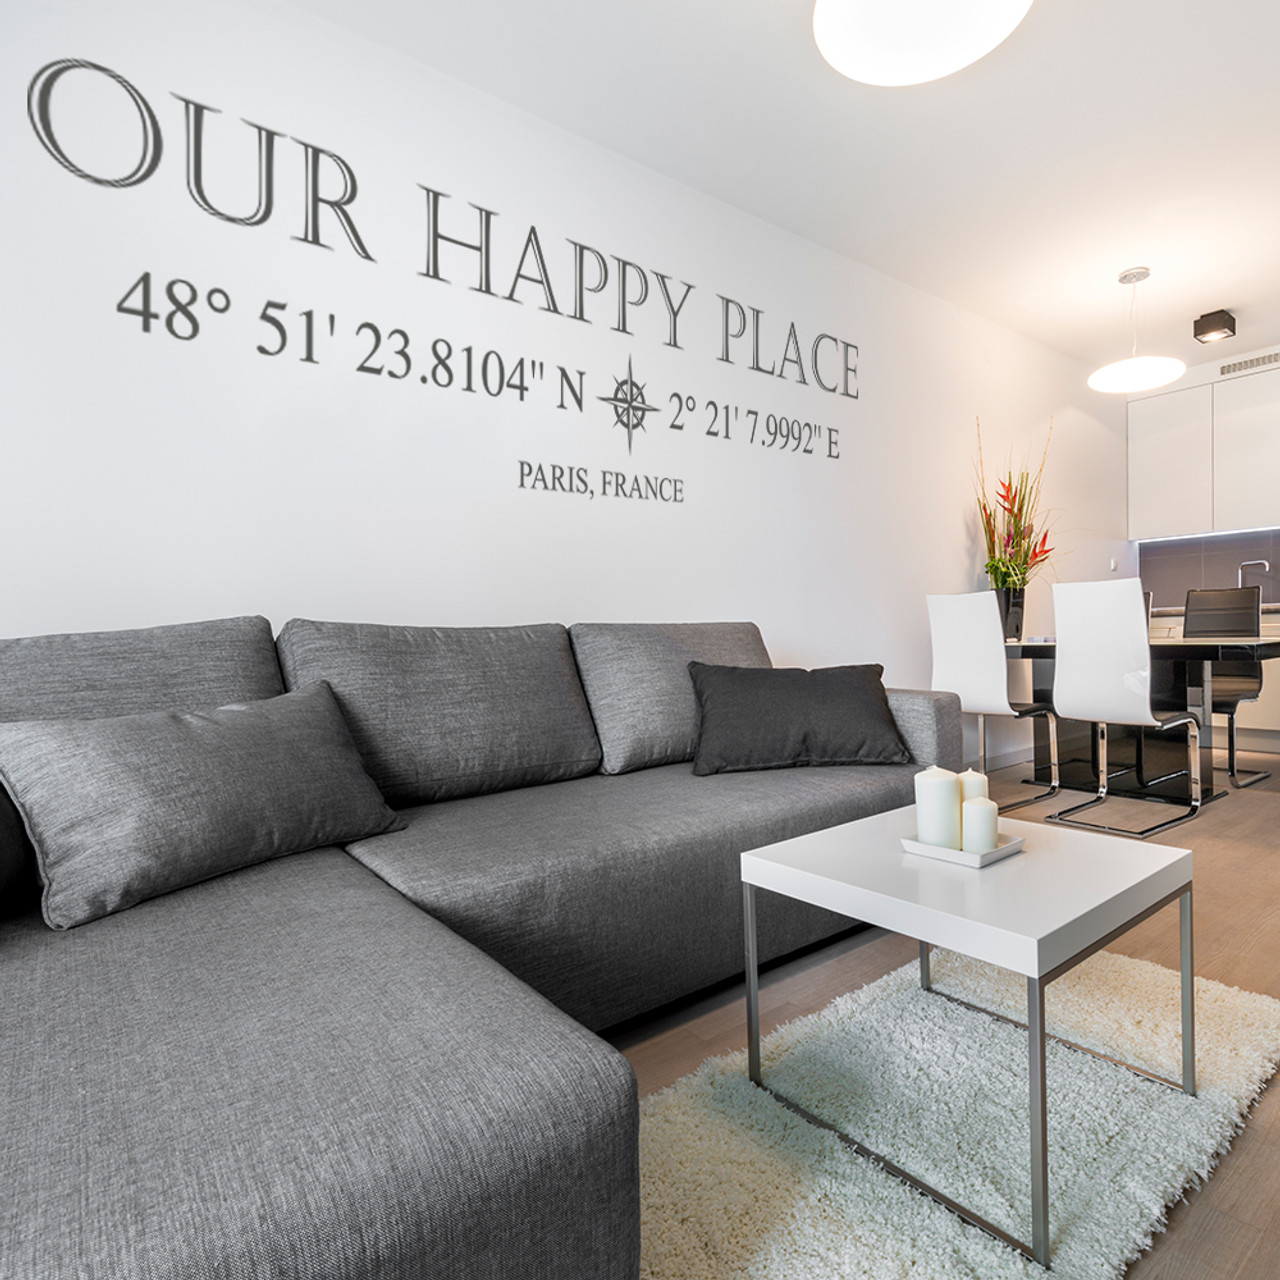 Our Happy Place vinyl wall decal with customizable coordinates, town and state name in dark grey